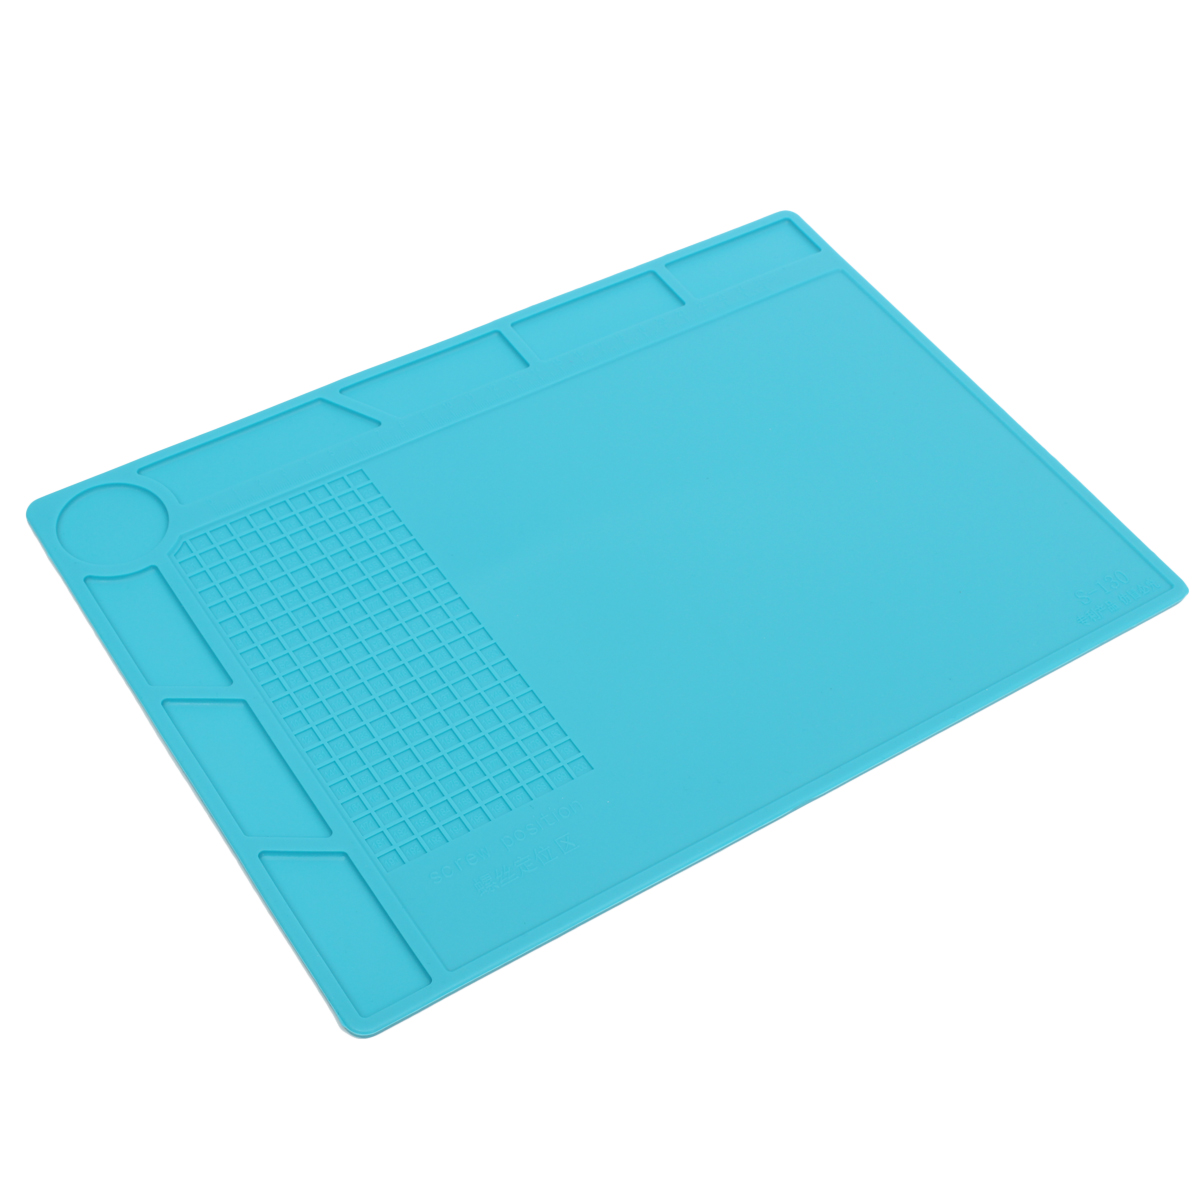 Scaffold Desk Mat : Silicone heat insulation pad desk mat repair maintenance